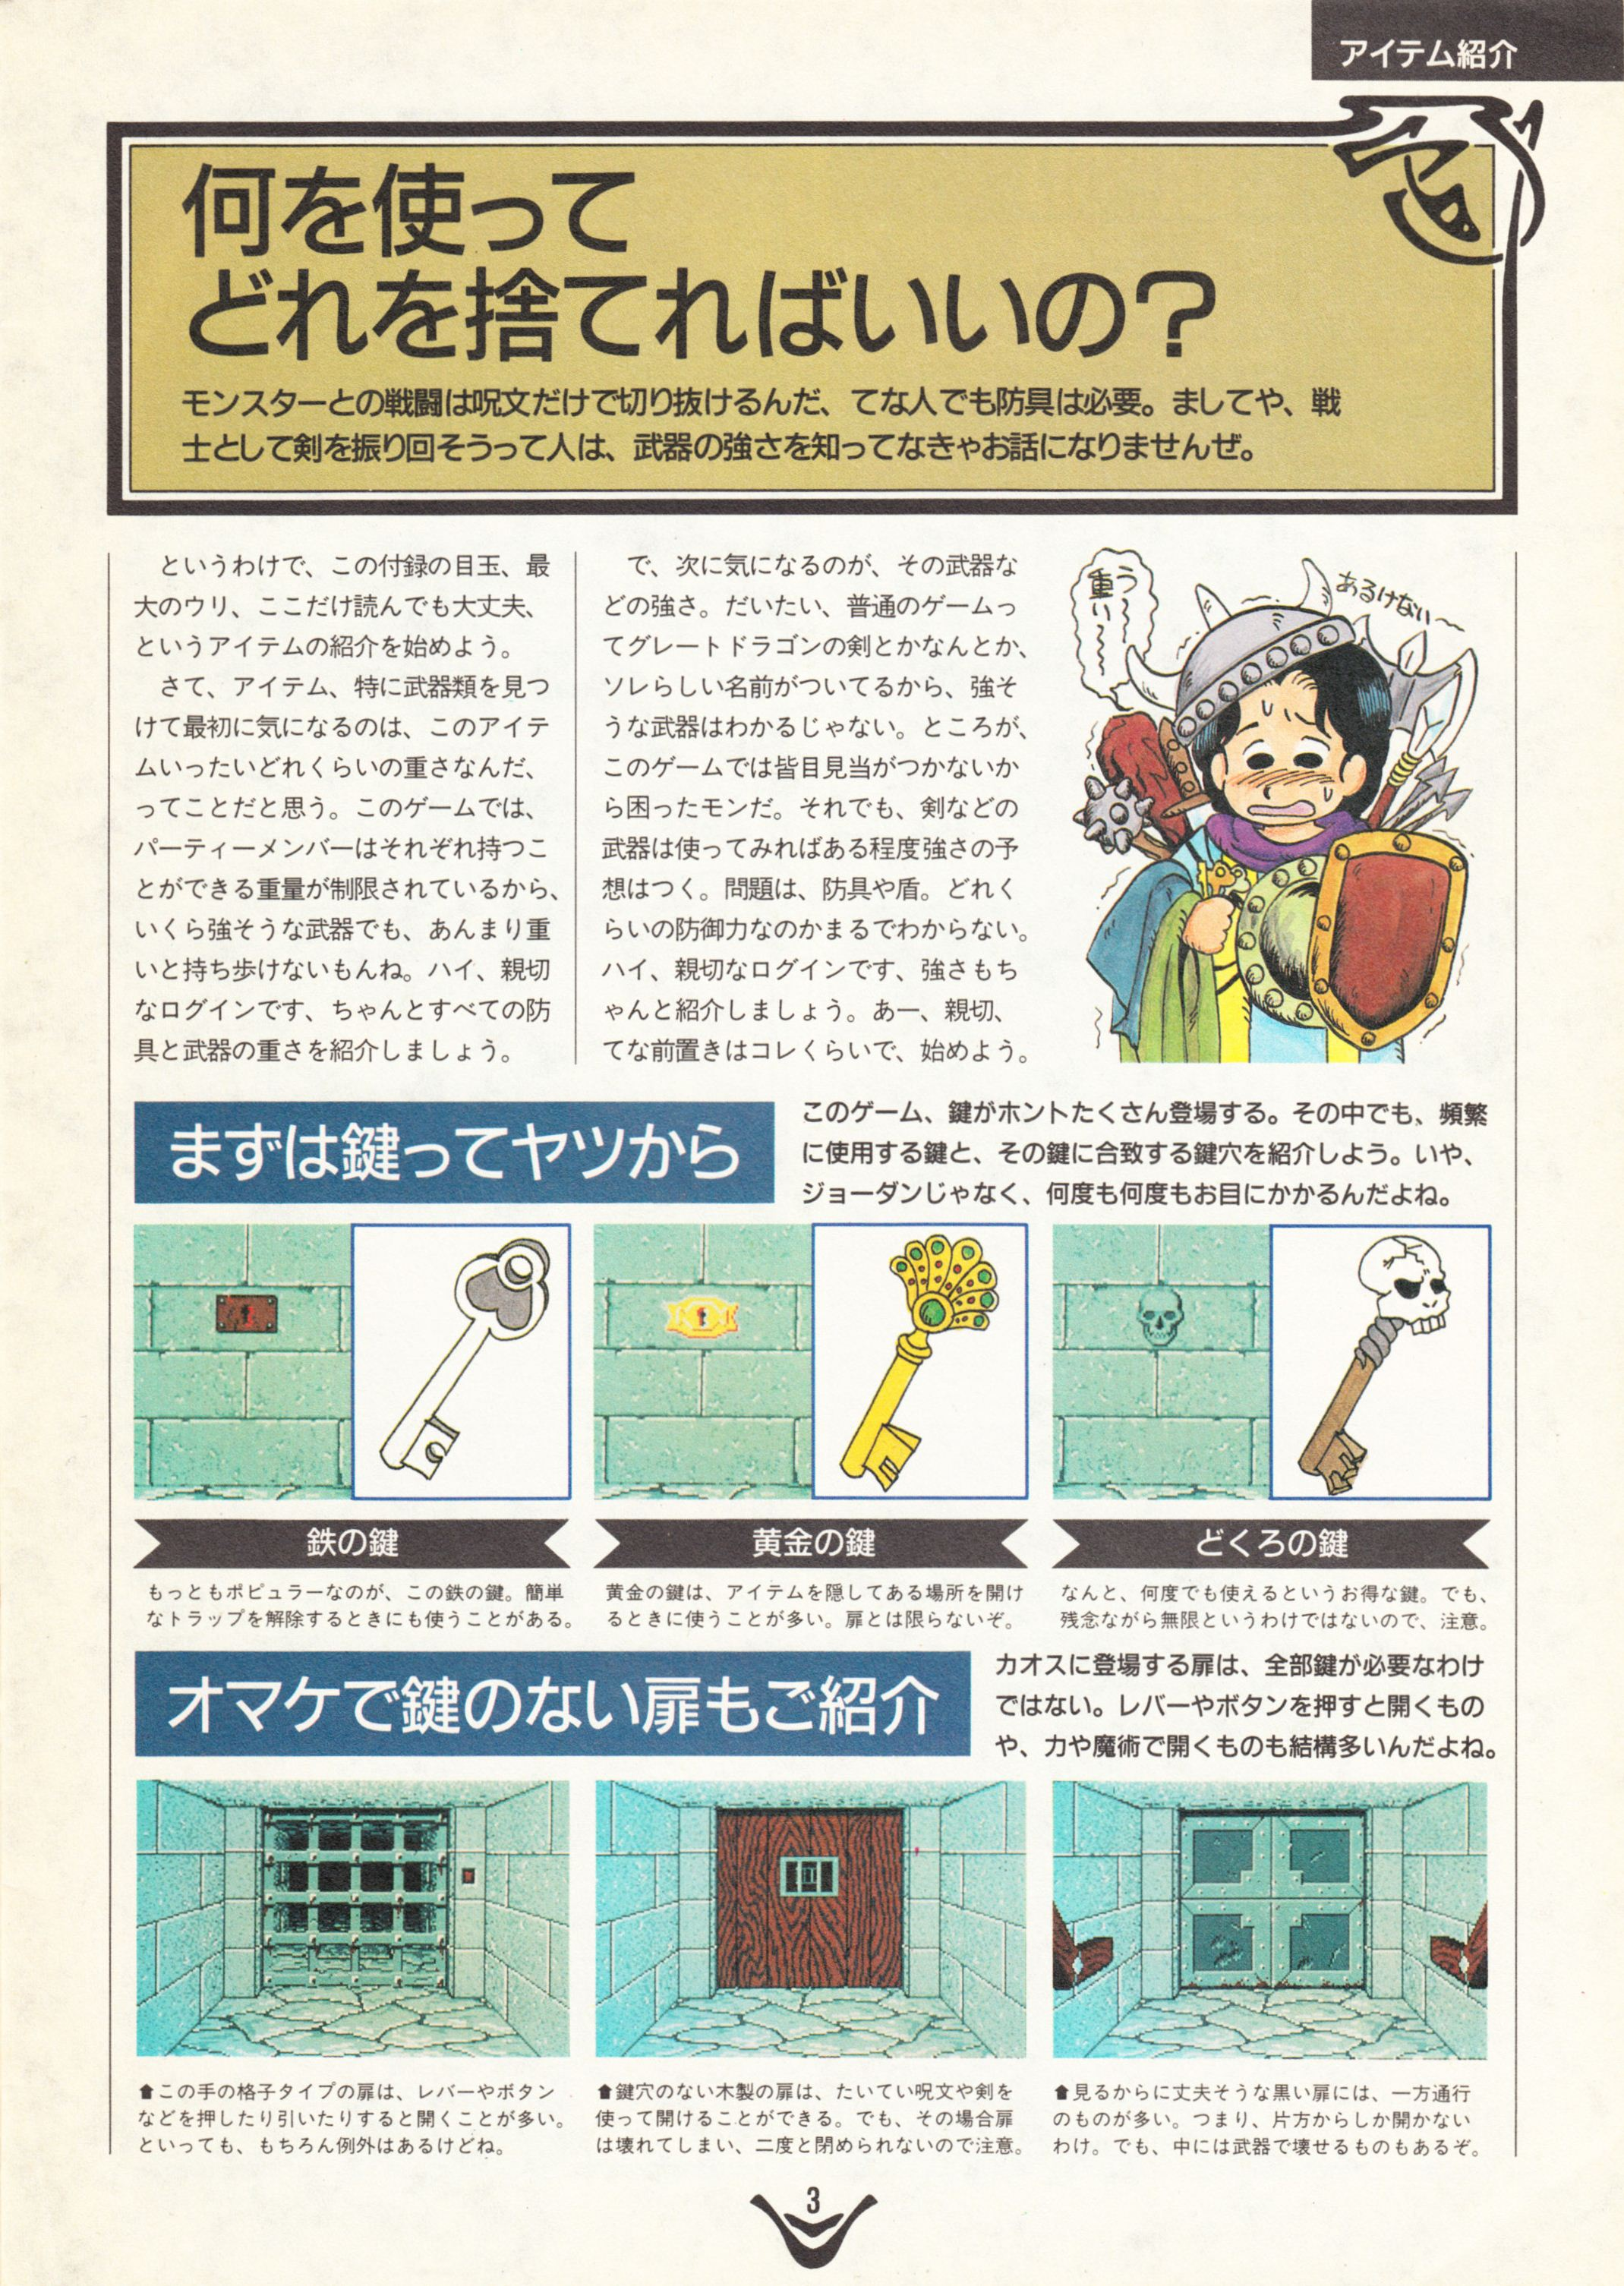 Special Supplement - Chaos Strikes Back Guide published in Japanese magazine 'Login', Vol 10 No 3 01 February 1991, Page 3